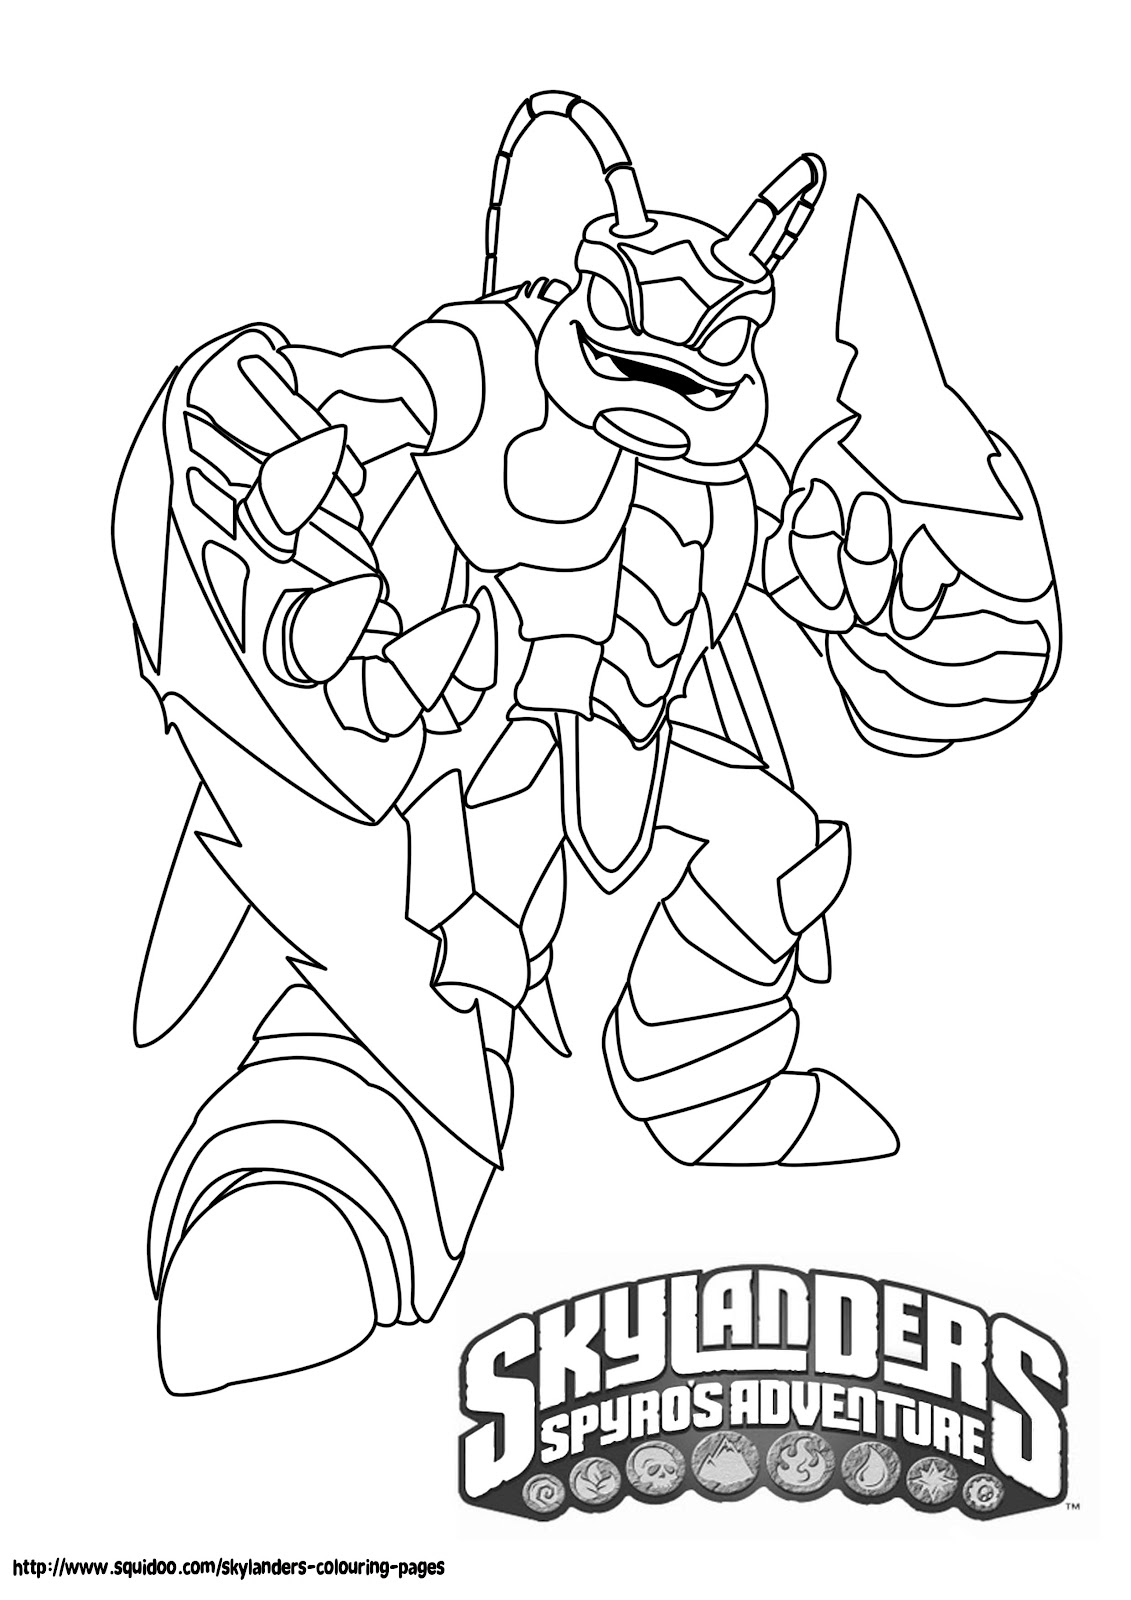 Skylander Coloring : skylander, coloring, Skylanders, Printable, Coloring, Pages, Mason, Website